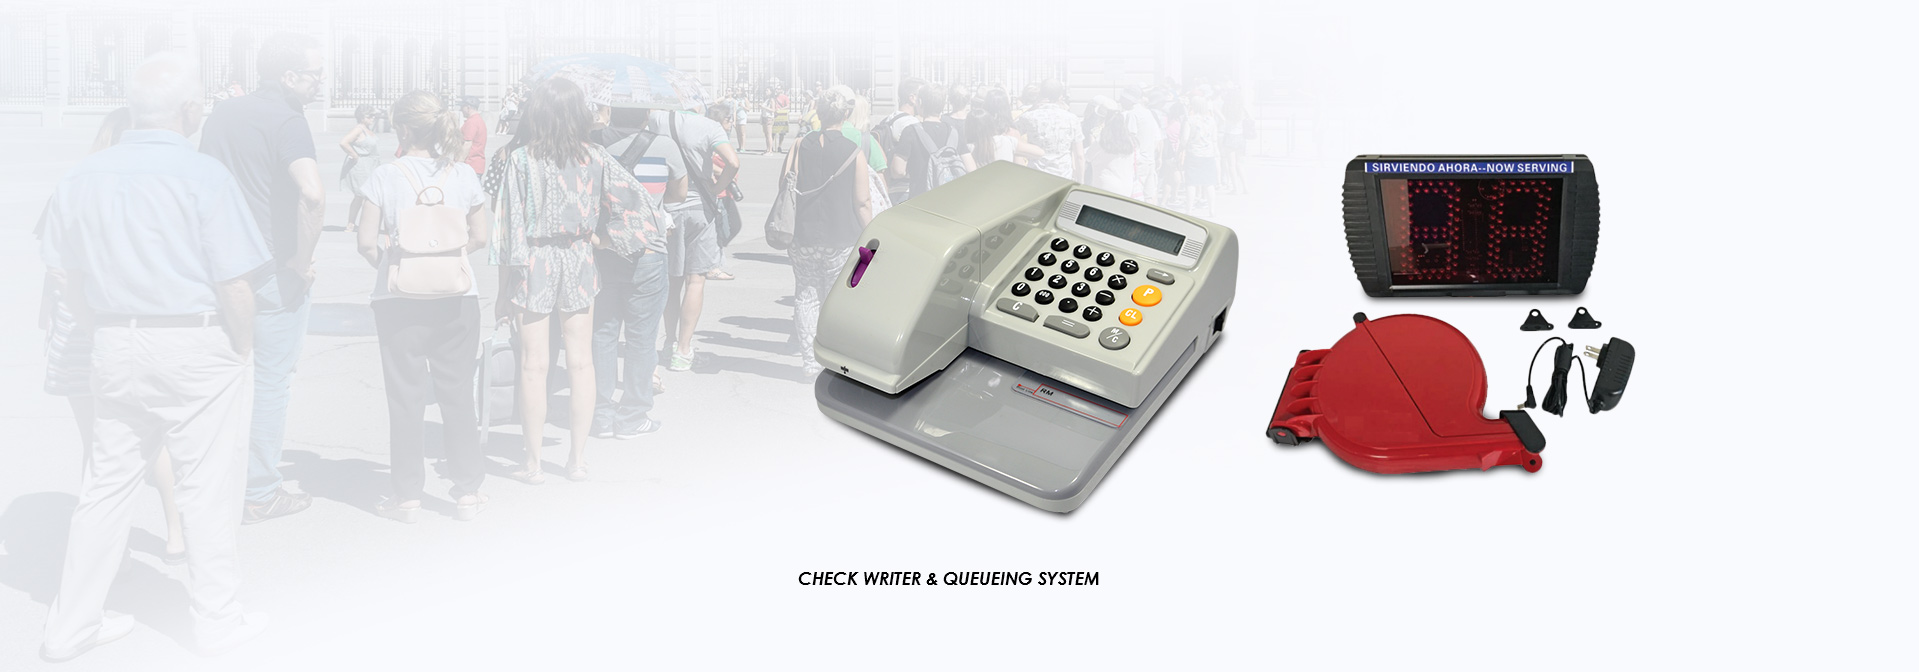 CHECK WRITER & QUEUEING SYSTEM